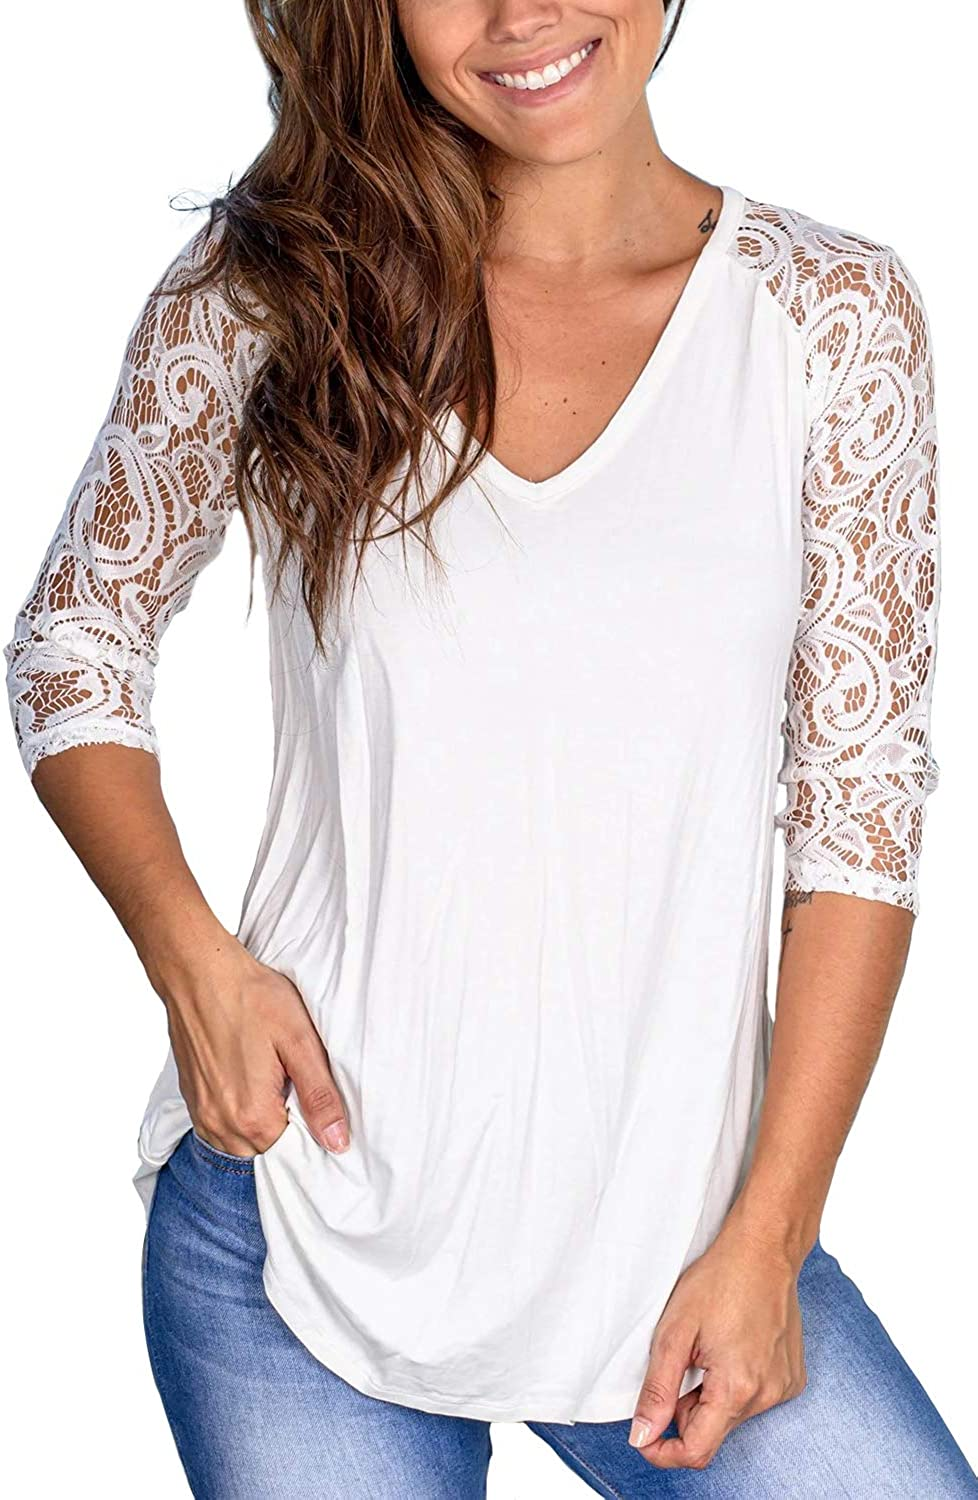 Sieanear Womens Lace Short Sleeve V-Neck T-Shirt Loose Casual Summer Tee Tops